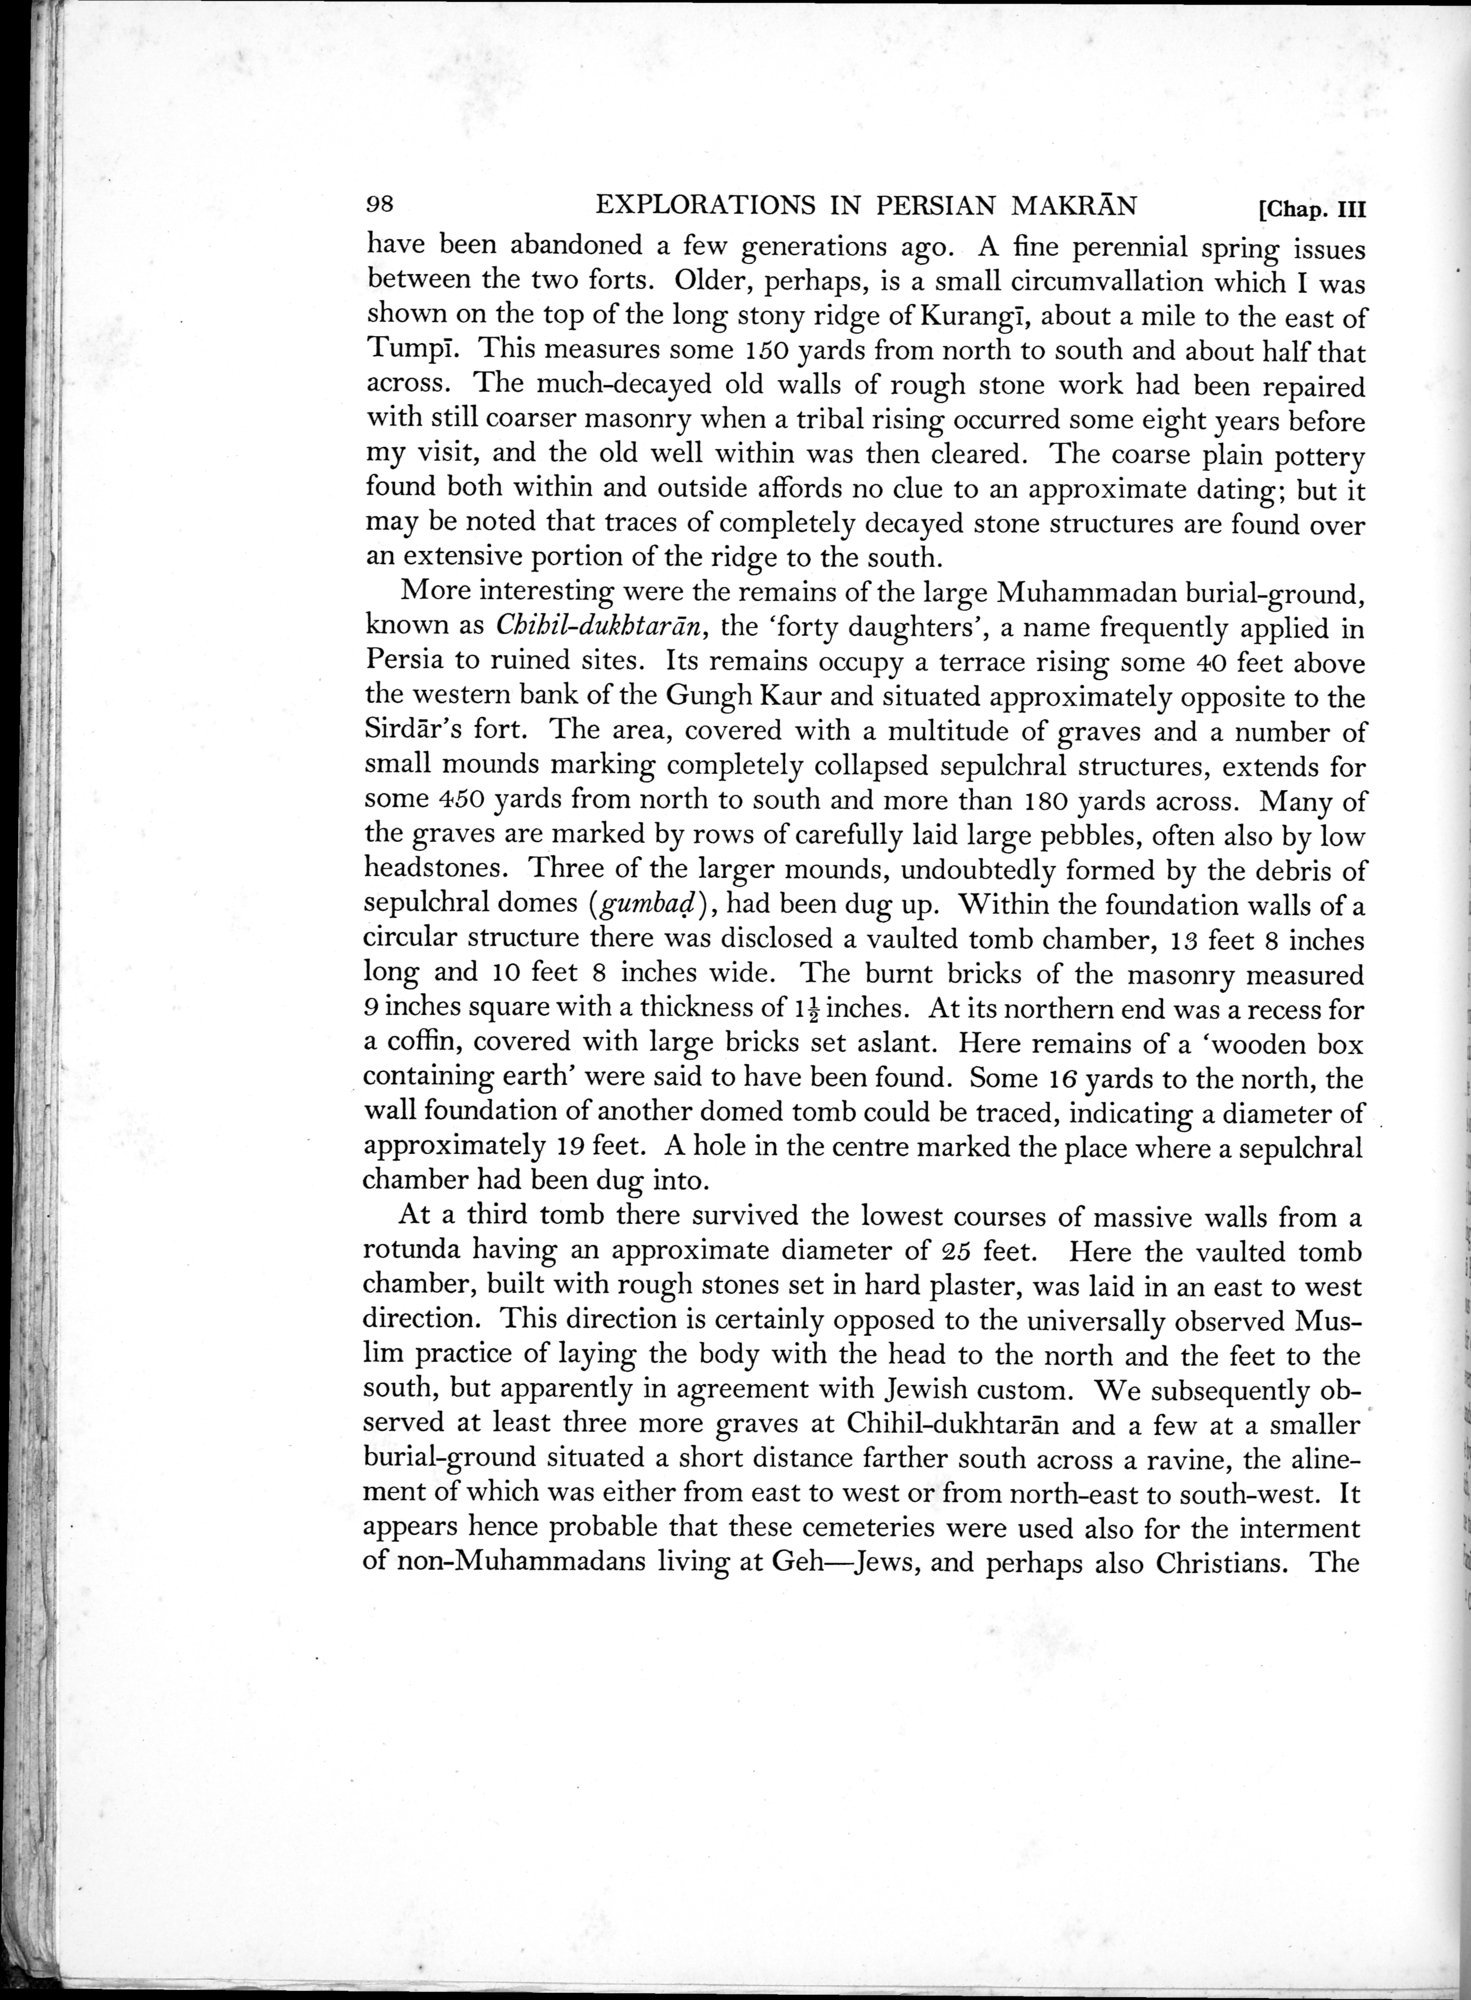 Archaeological Reconnaissances in North-Western India and South-Eastern Īrān : vol.1 / Page 148 (Grayscale High Resolution Image)